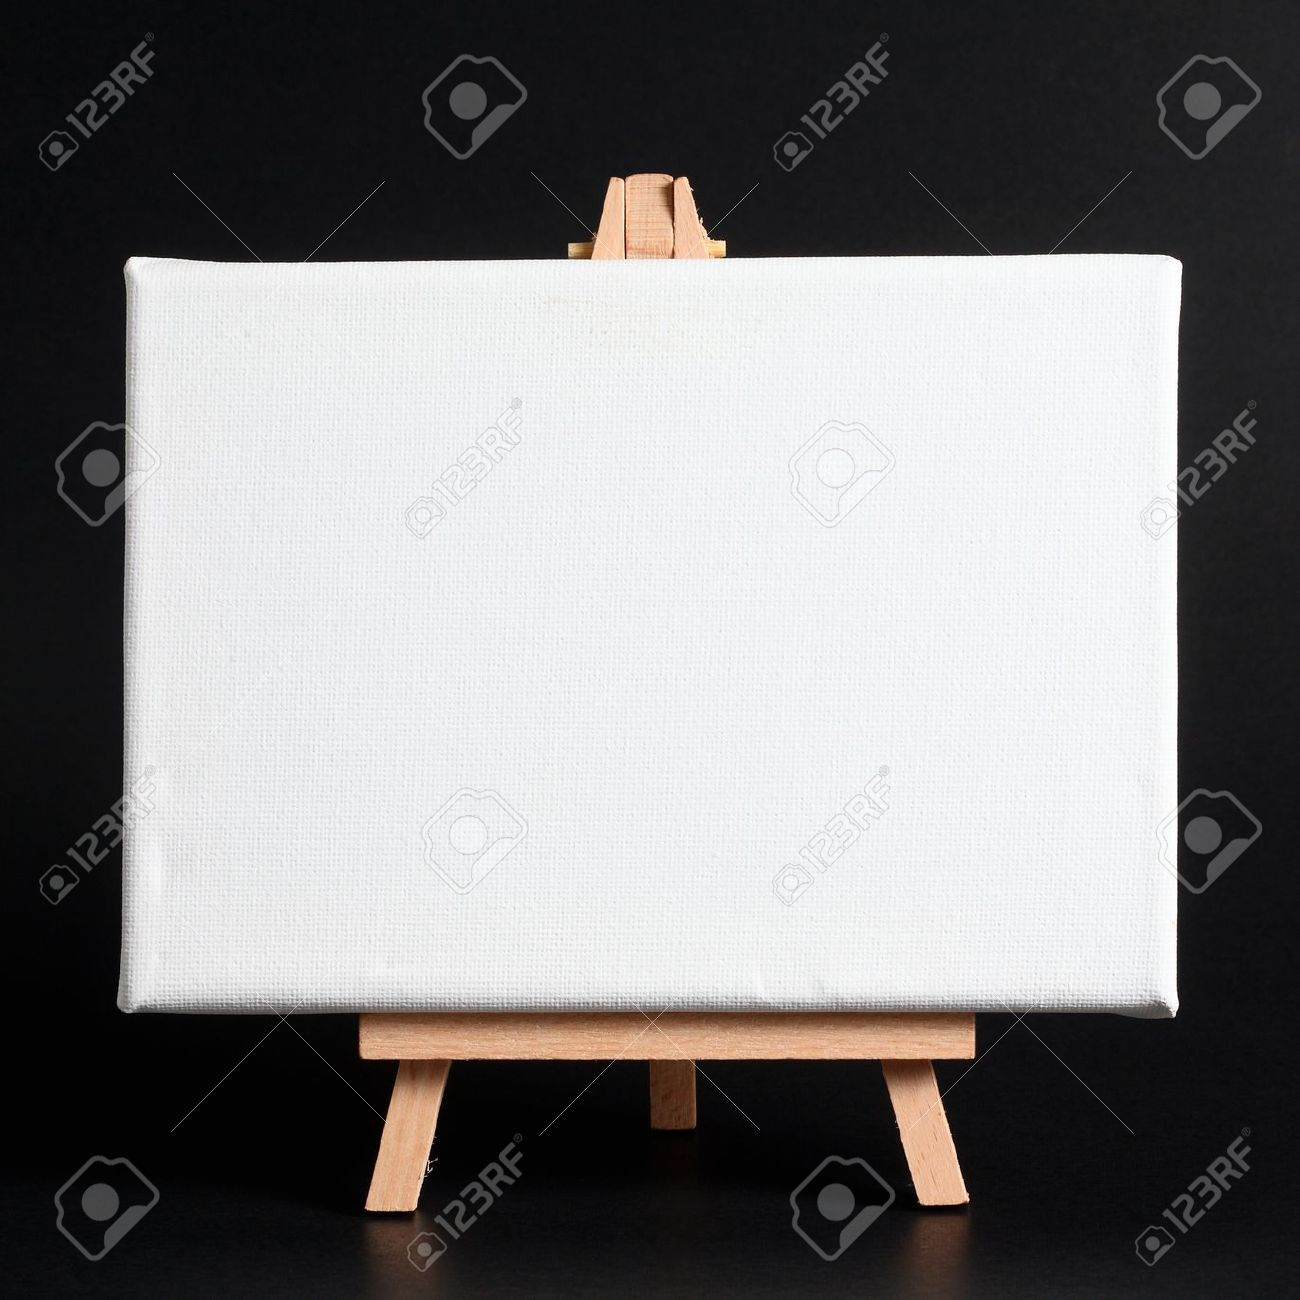 Wooden easel with blank canvas on a dark background Stock Photo - 14172481